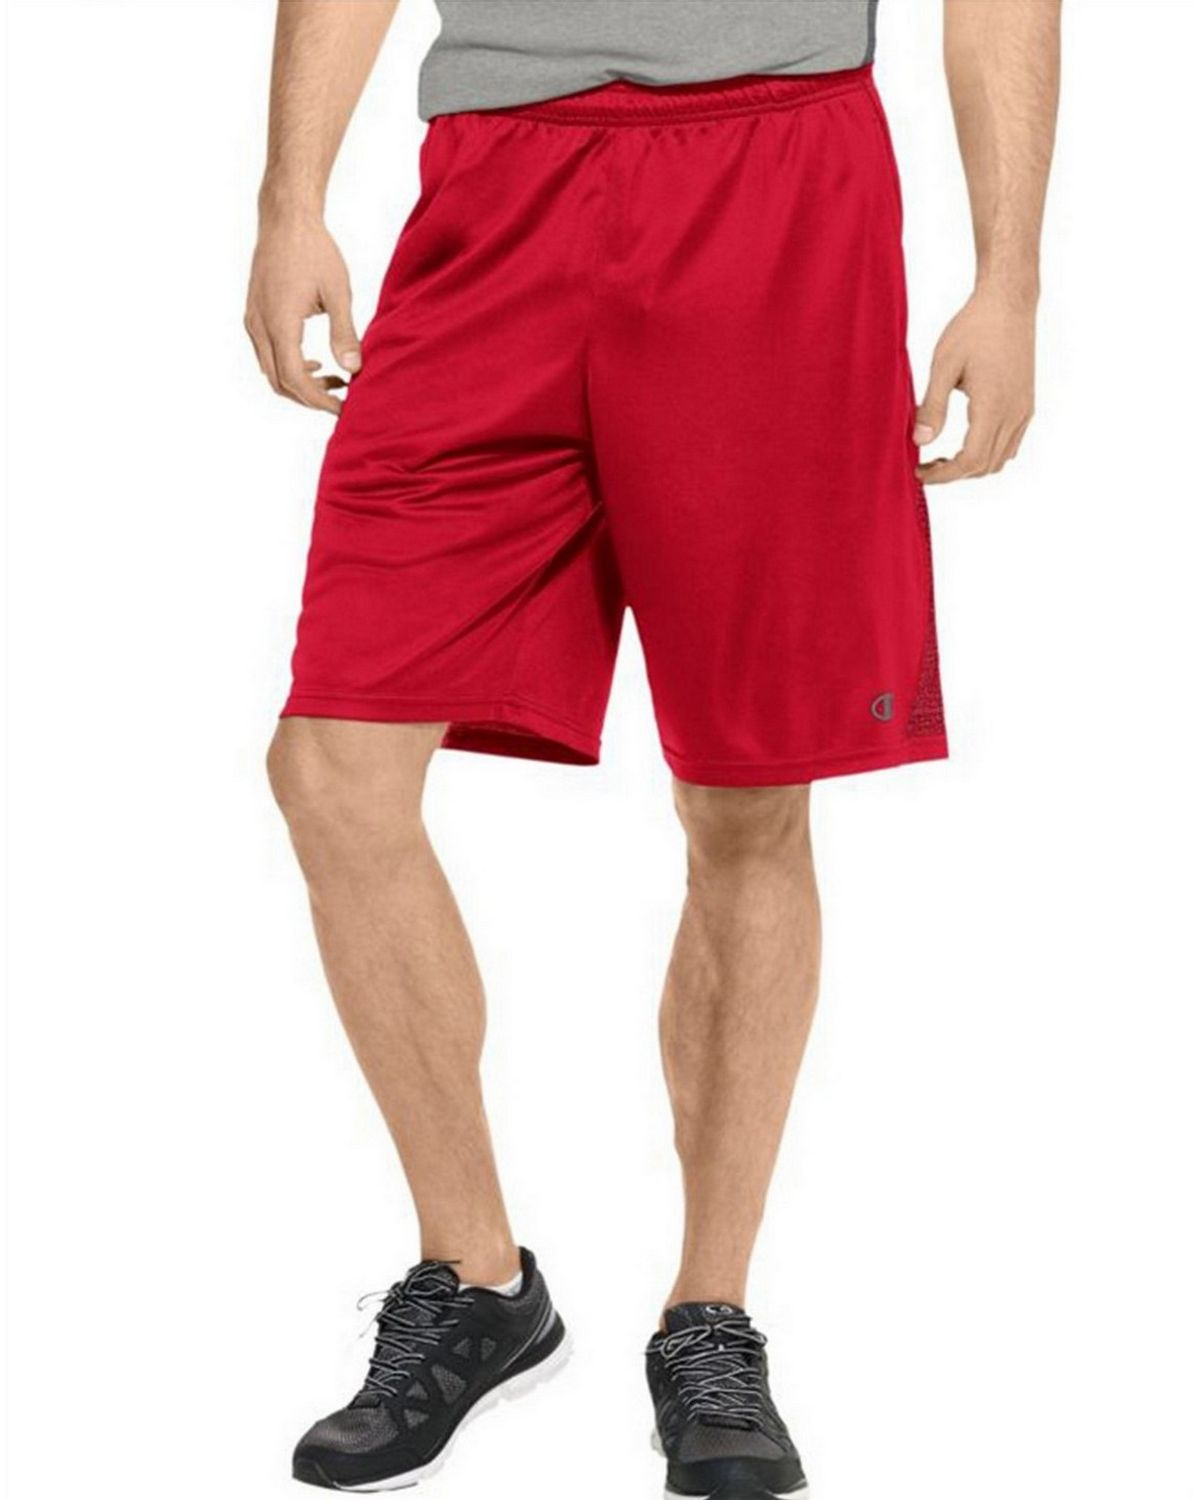 Champion 86703 Vapor PowerTrain Knit Shorts - Champion Scarlet - XXL 86703